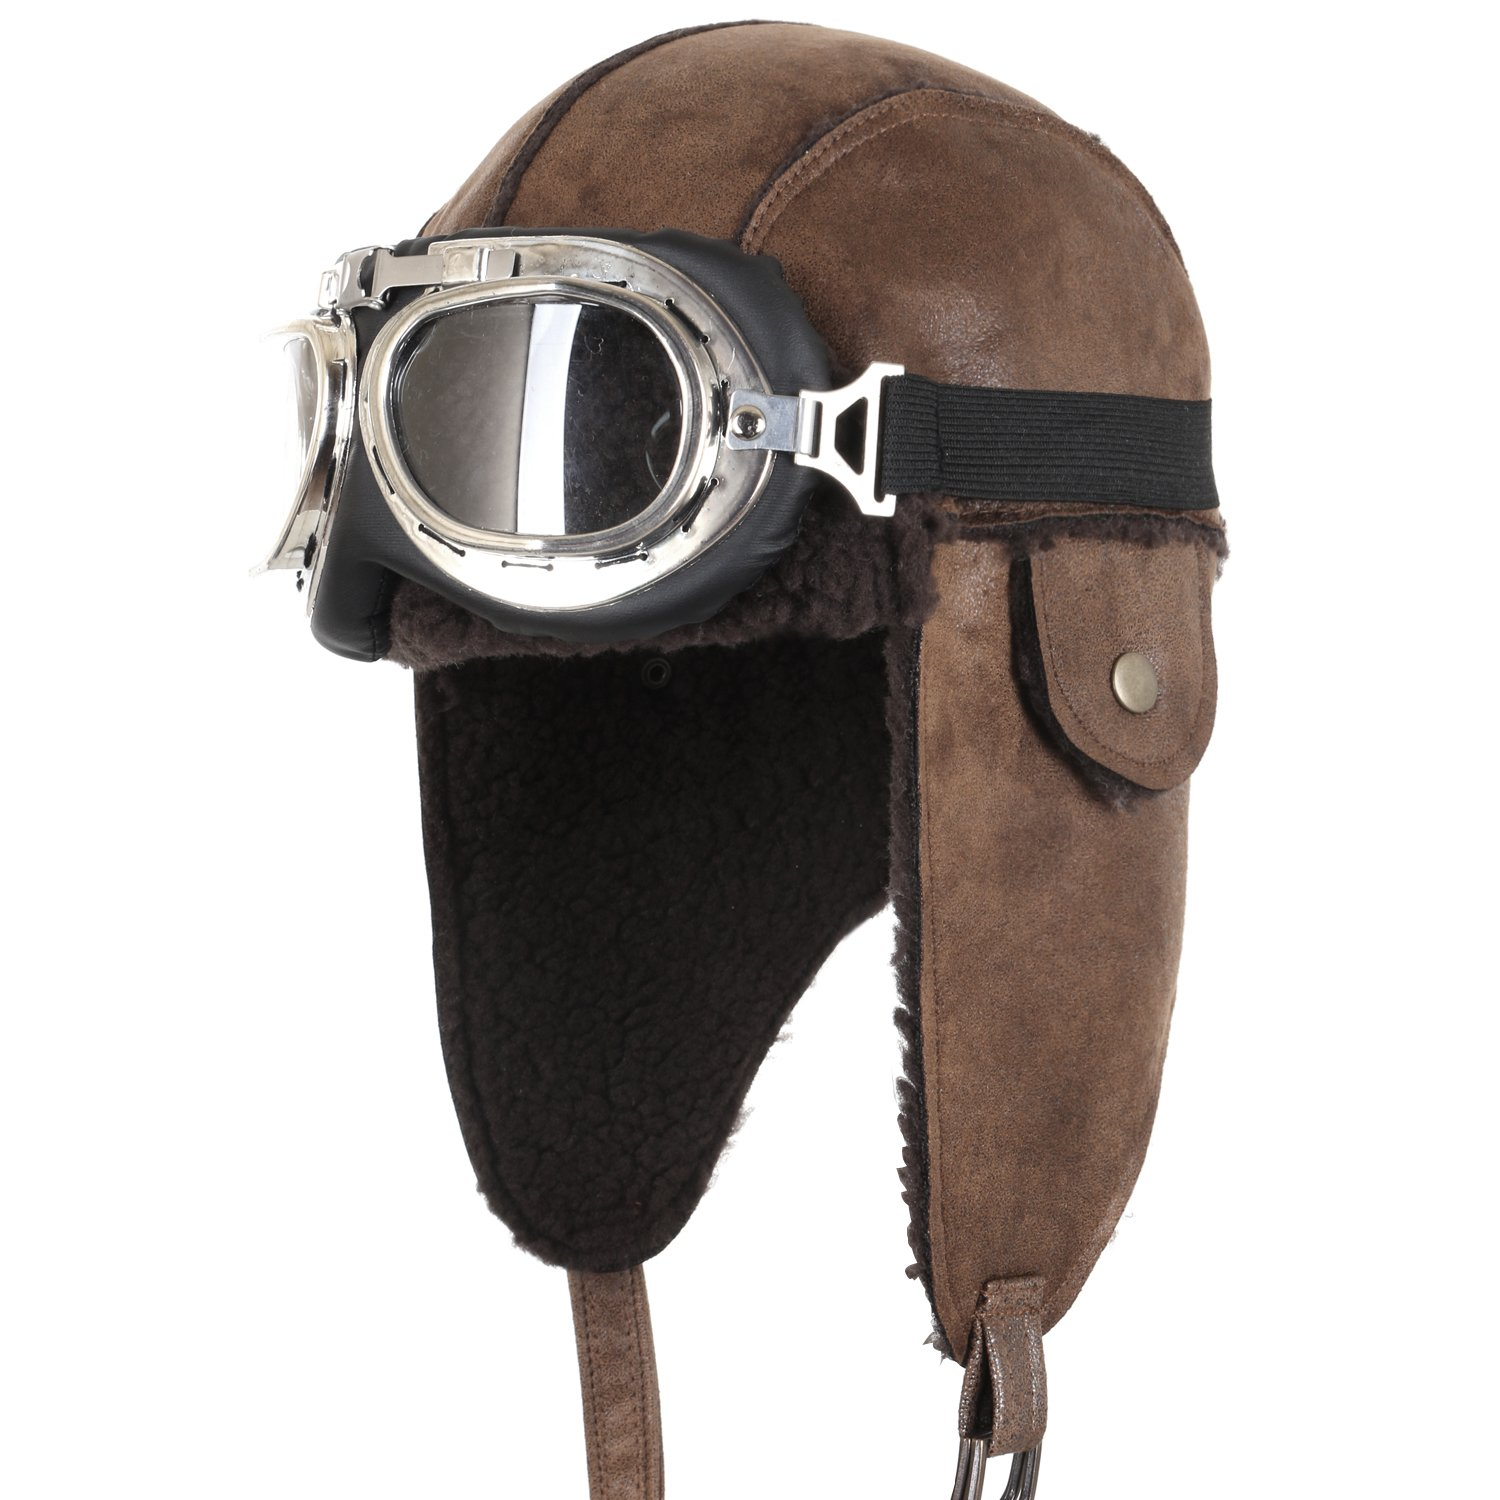 Steampunk Accessories | Goggles, Gears, Glasses, Guns, Mask  Aviator Hat Winter Snowboard Fur Ear flaps Trooper Trapper Pilot Goggles $34.99 AT vintagedancer.com